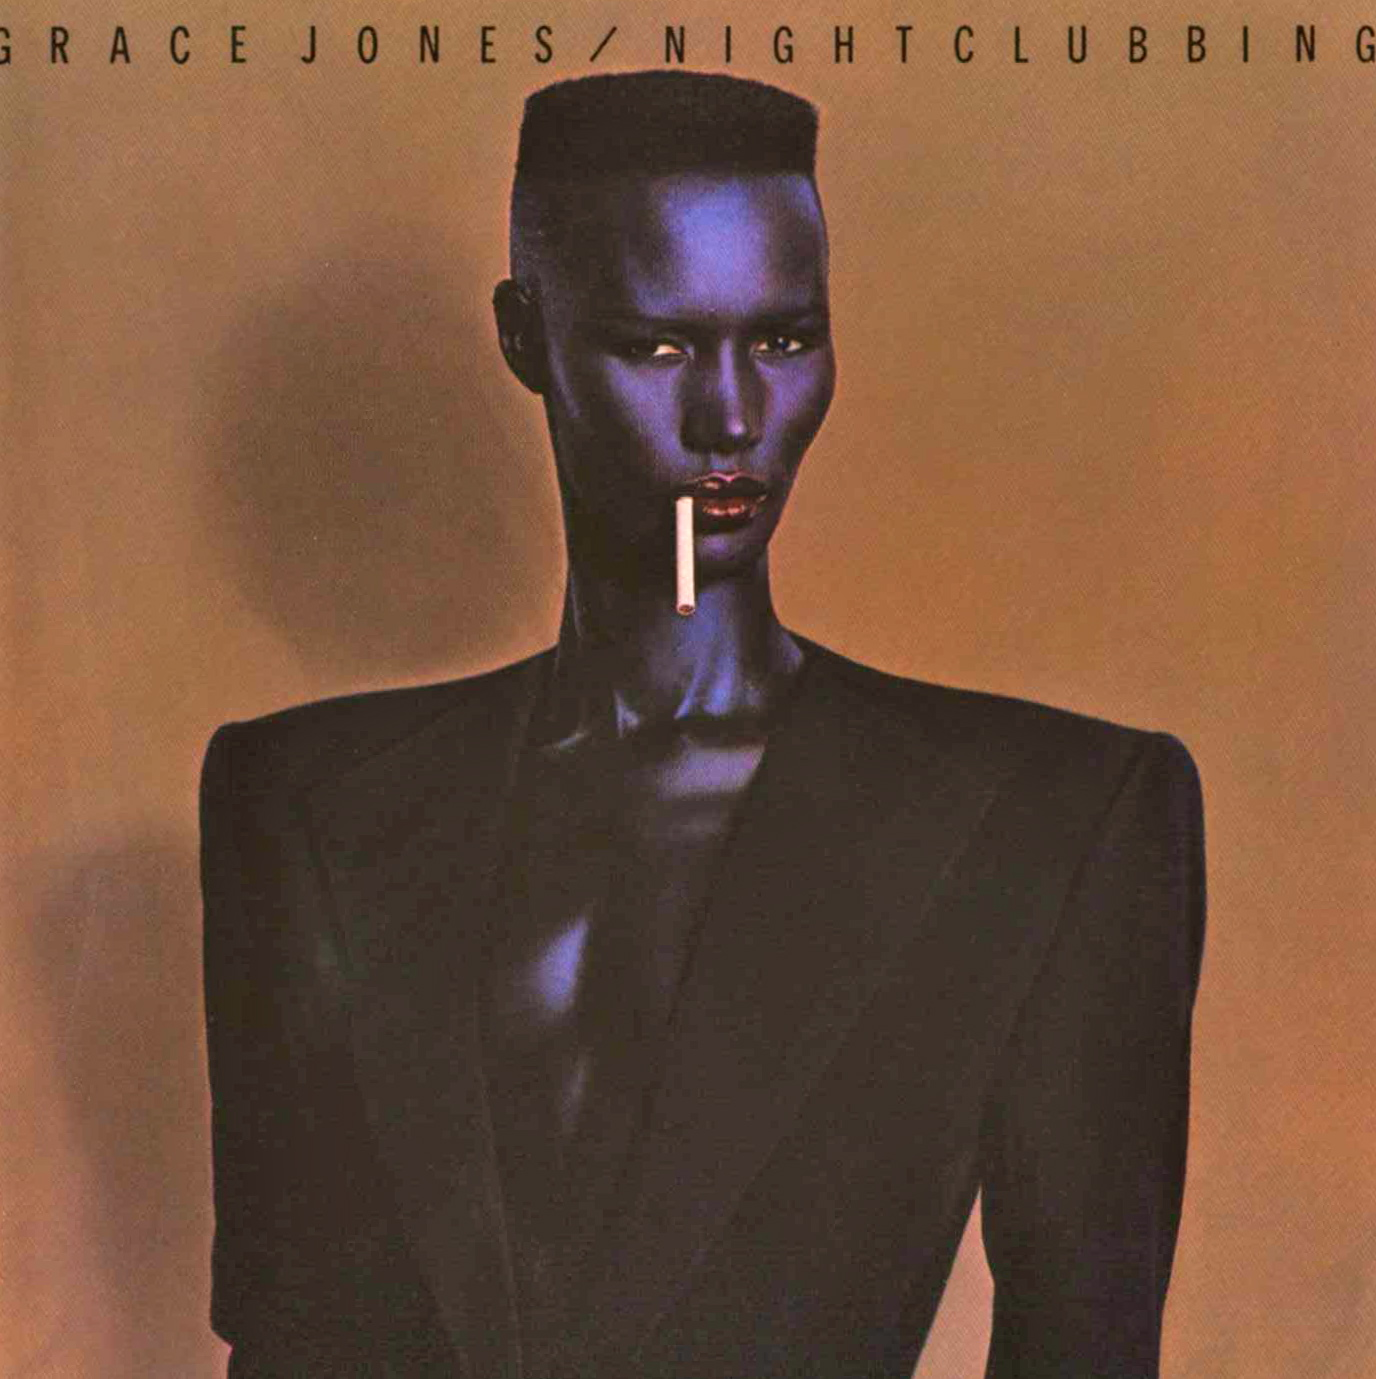 Grace Jones (Nightclubbing) (AIFF)FRONT